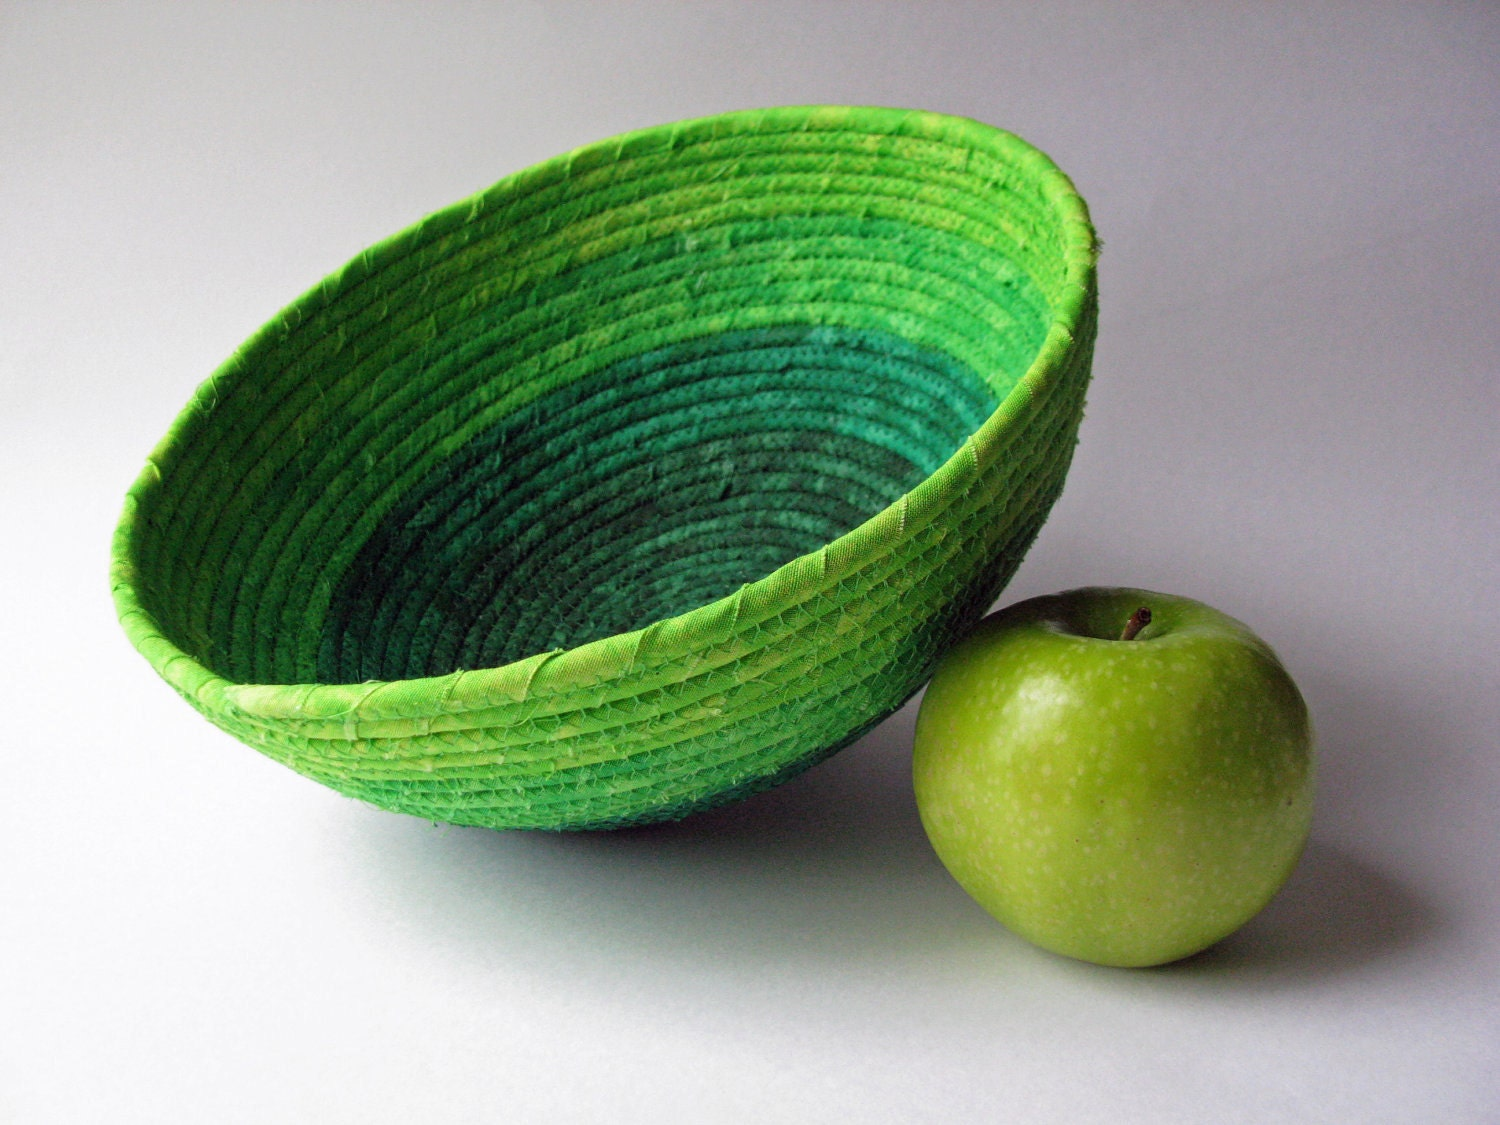 Fabric Coiled Basket - Large Green